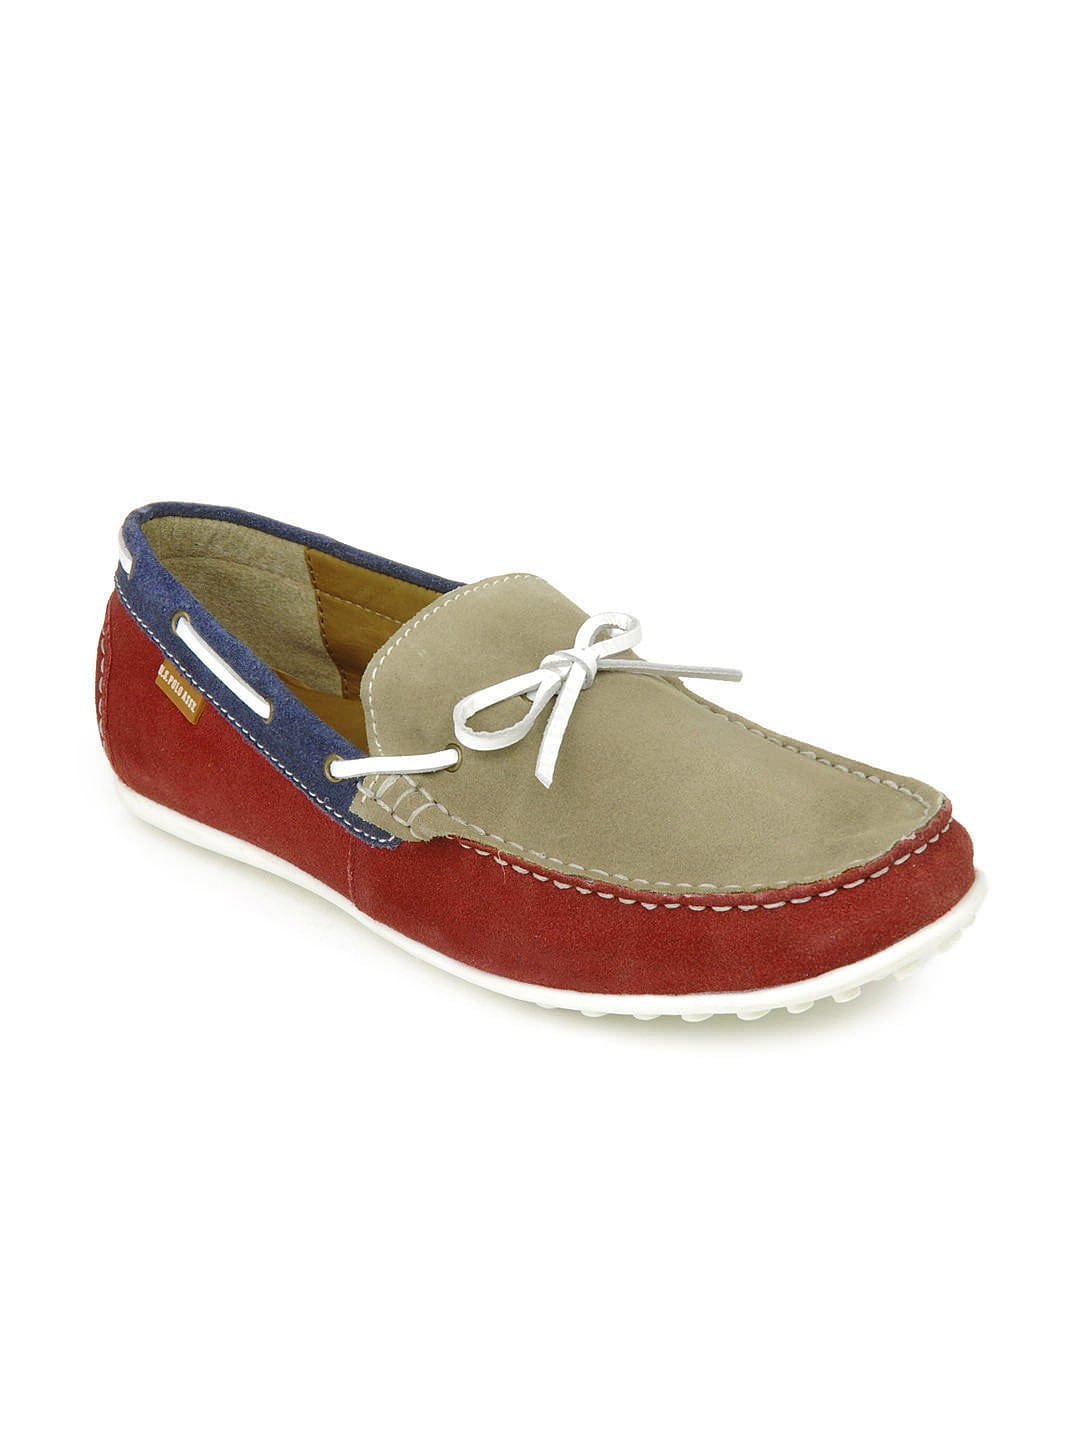 US-Polo-Assn-Men-Red---Brown-Boat-Shoes